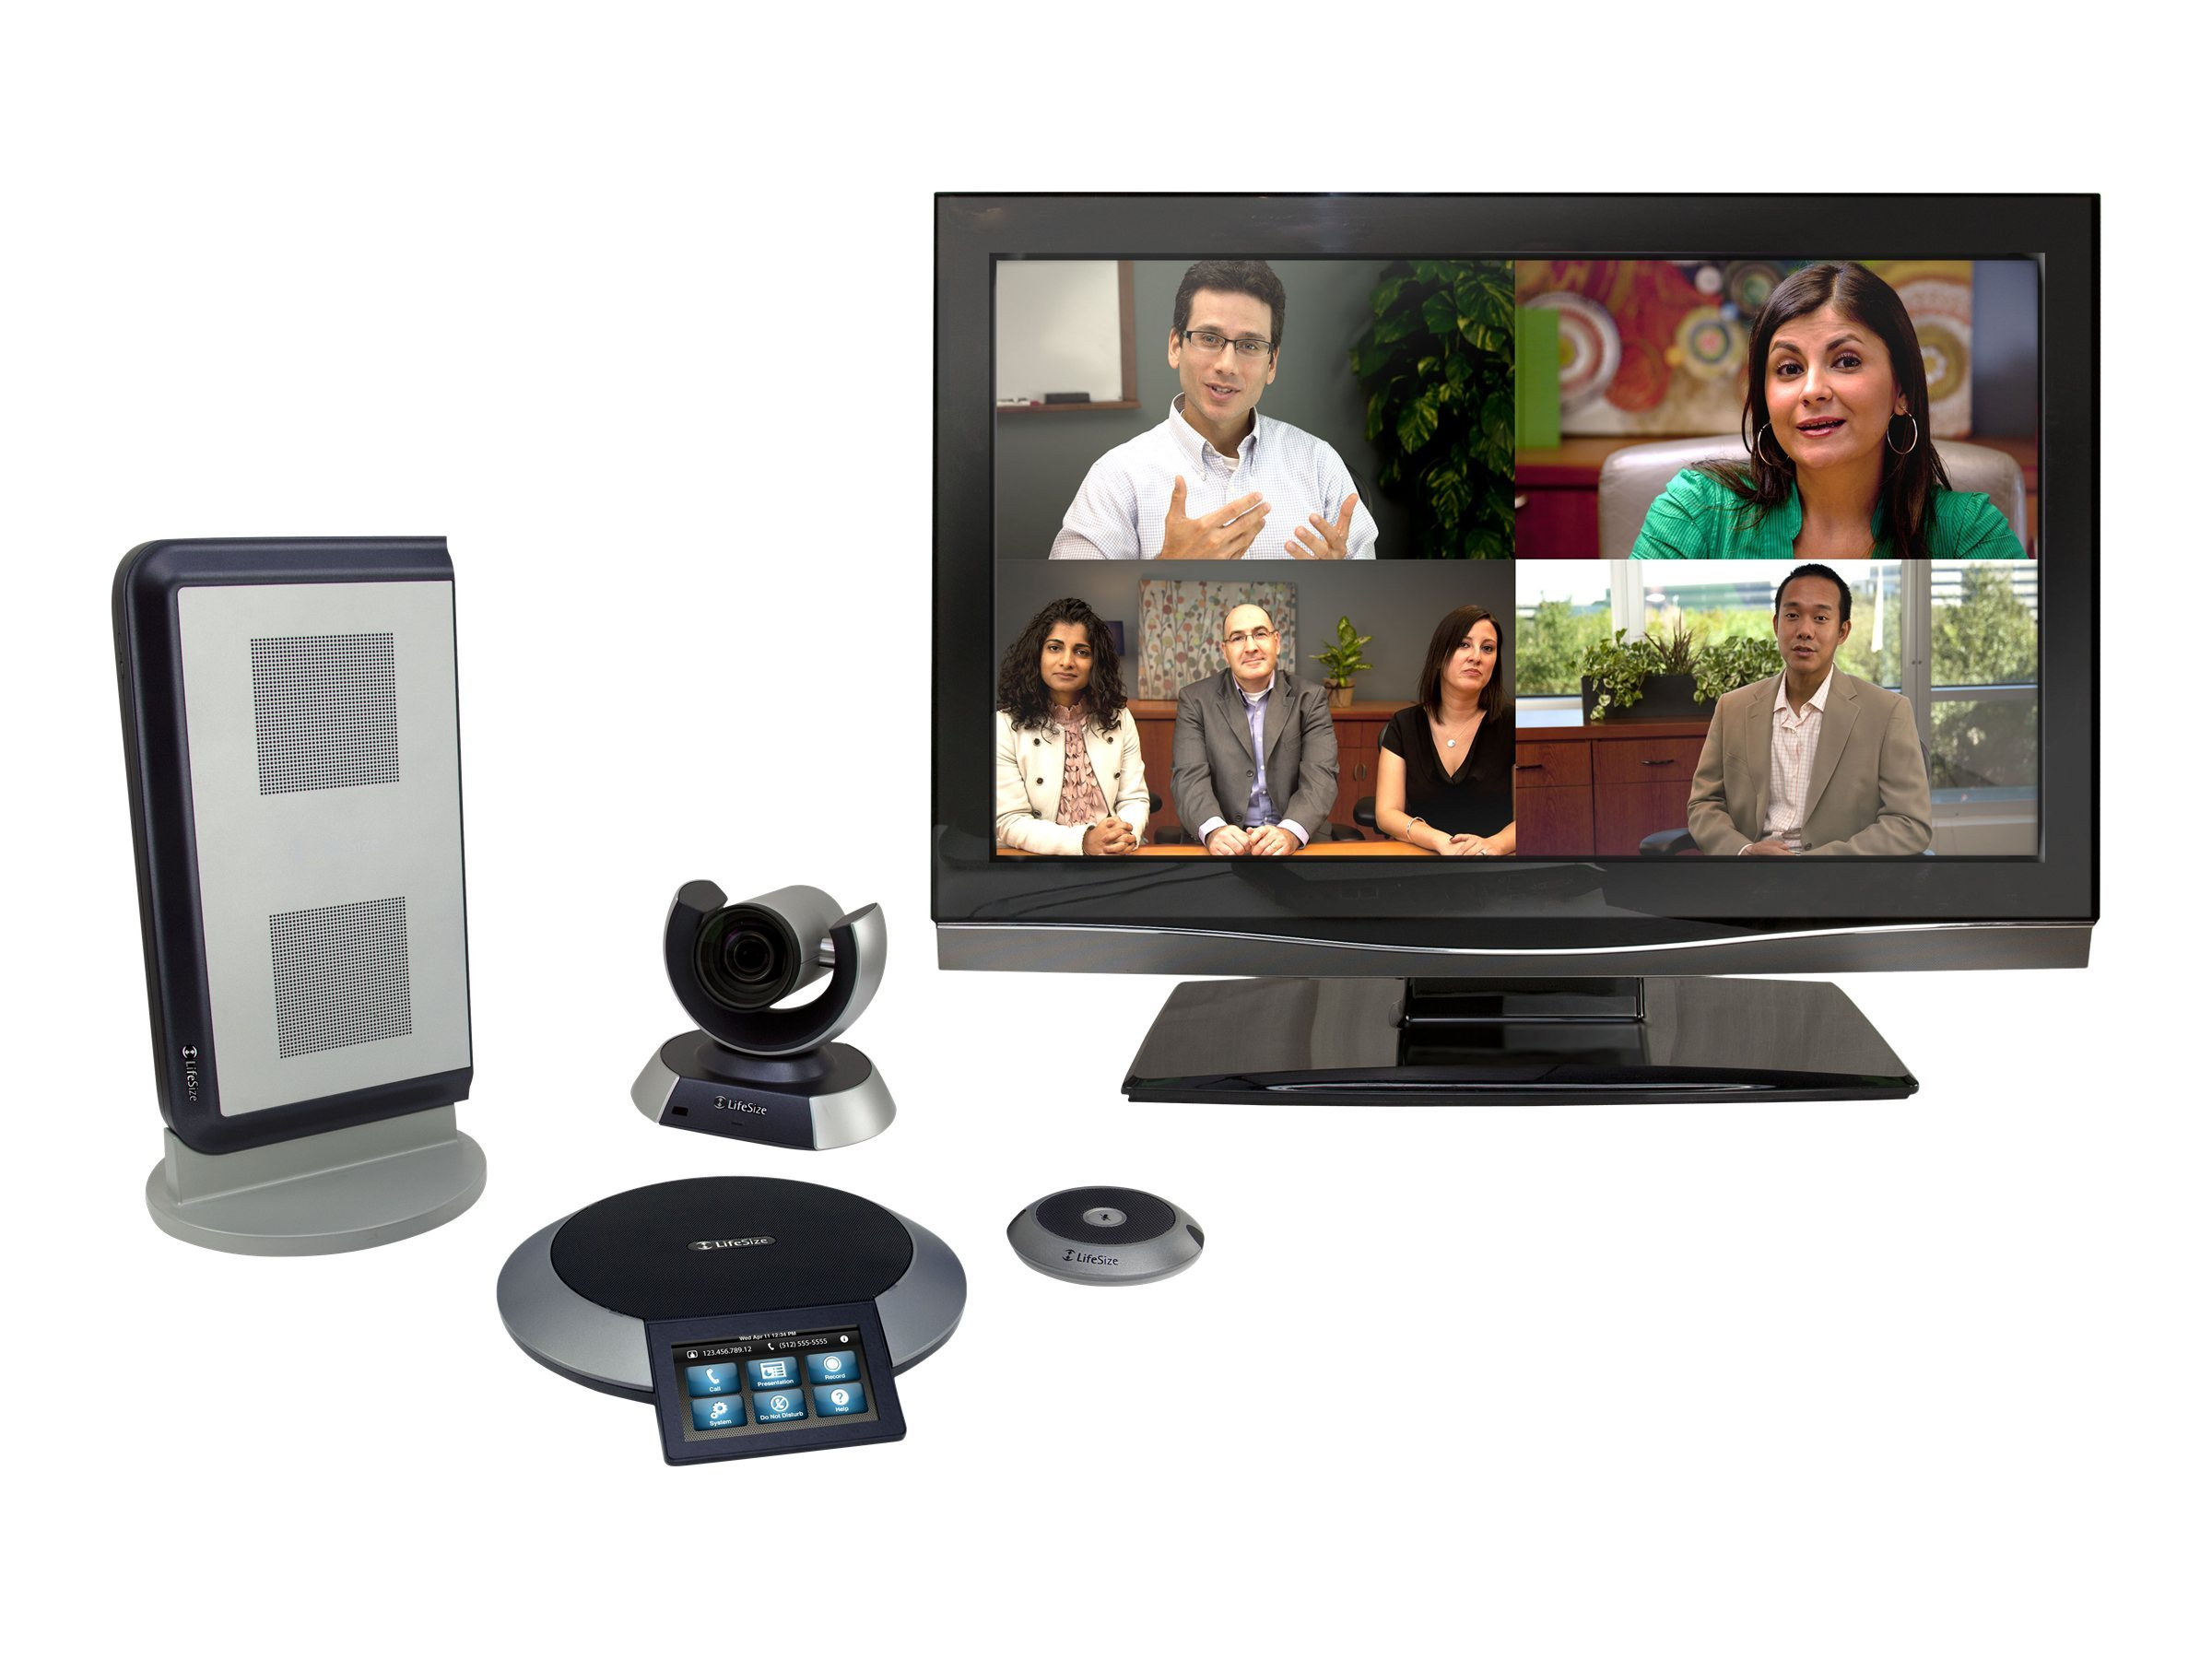 Lifesize Team 220, 10x Camera, Dual MicrPod, 1000-0000-1137, 14465028, Audio/Video Conference Hardware